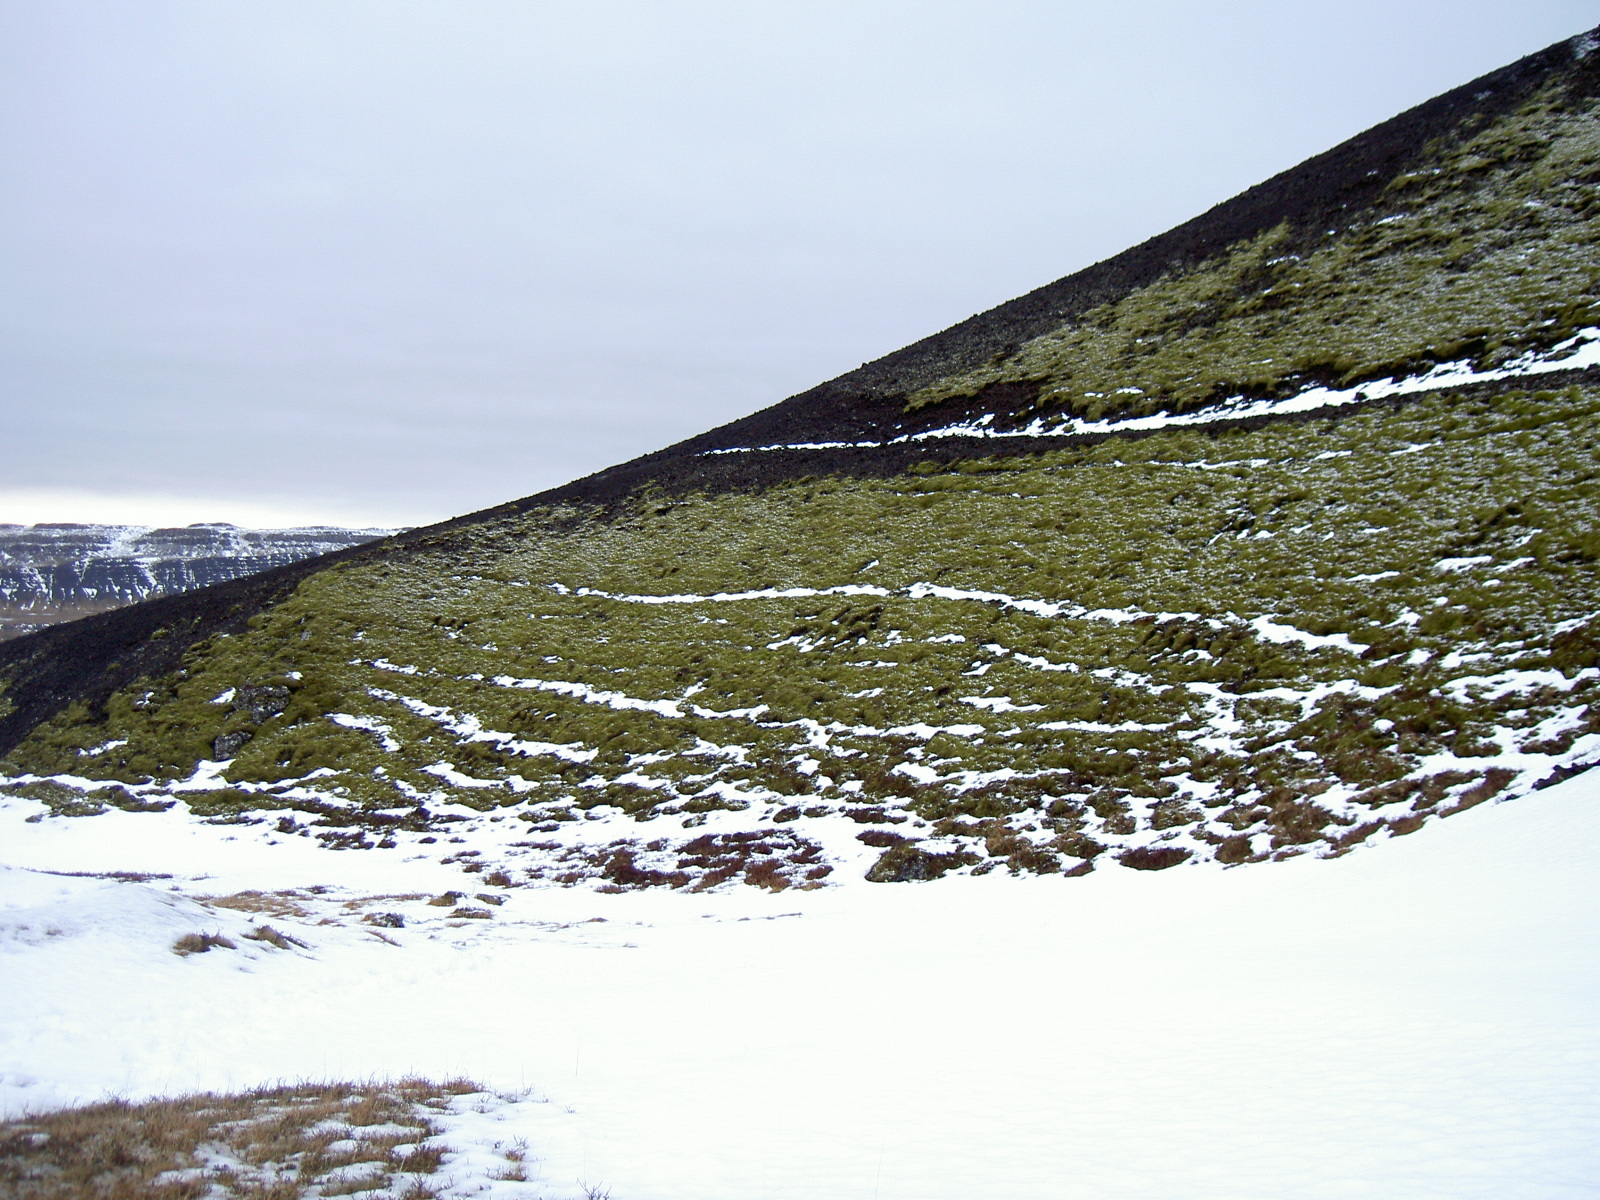 Path towards Grabok crater (purpose of page is to display an image)